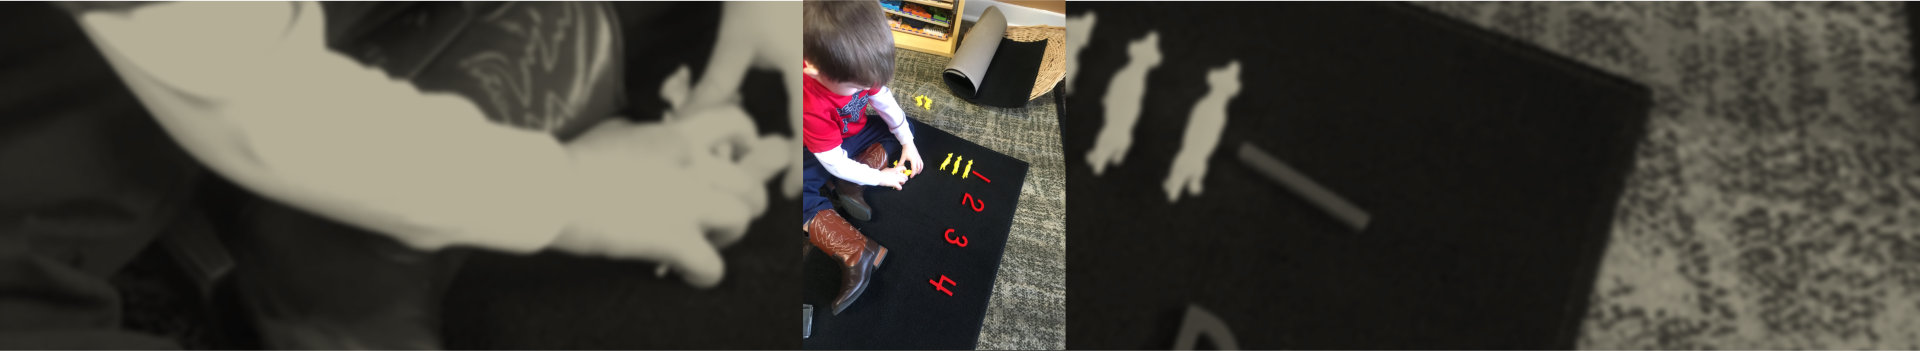 boy learning numbers